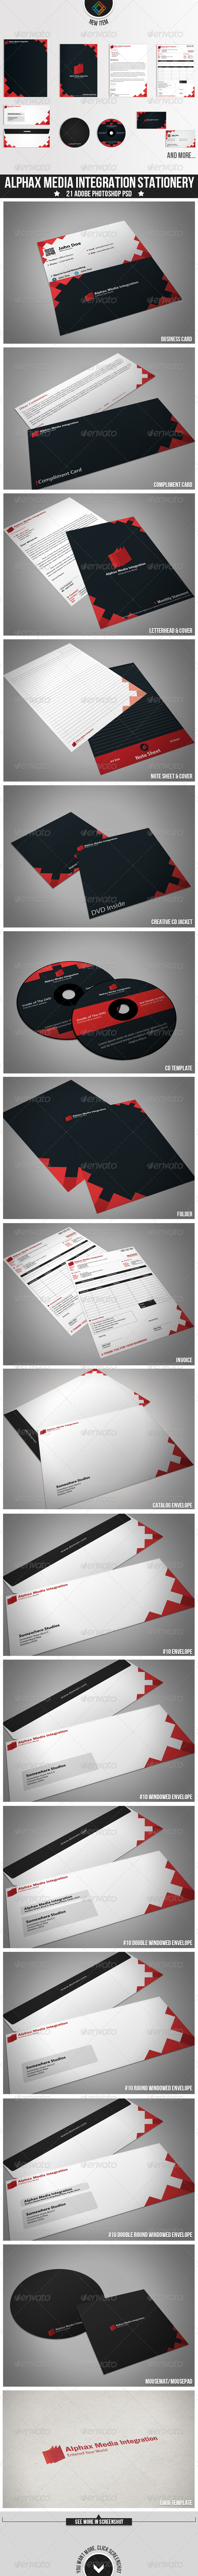 GraphicRiver Alphax Media Integration Stationery 3449802